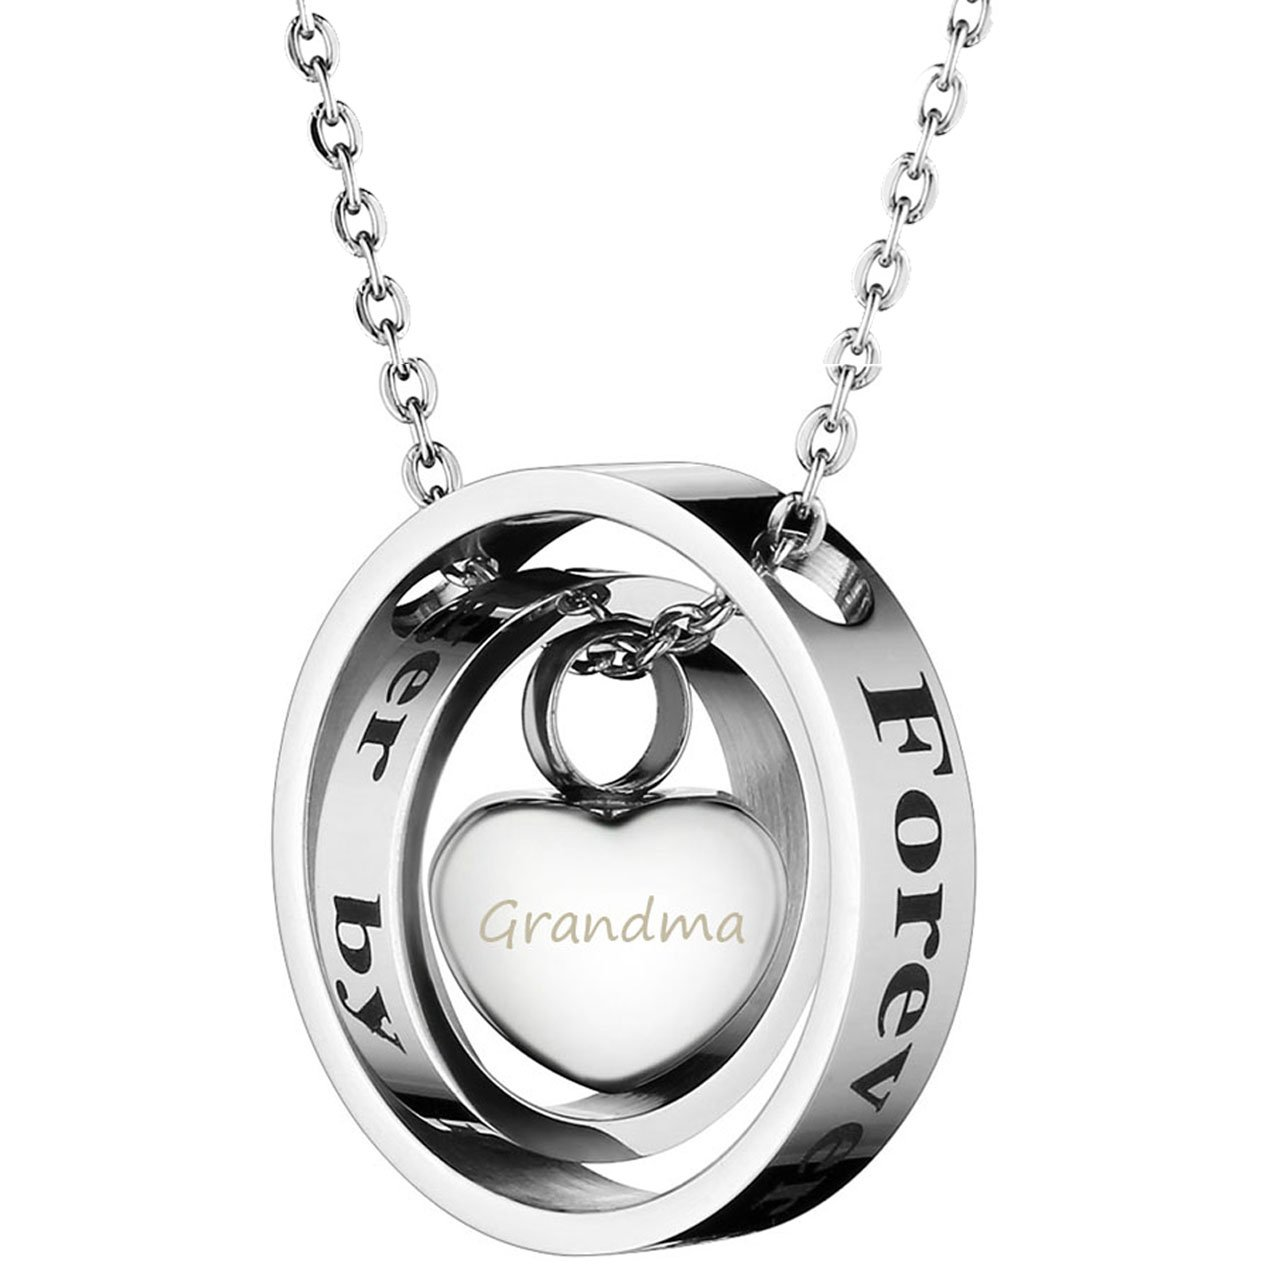 Zysta Free Engraving - Personalized Custom Floating Polished Ring Necklace Words Forever in My Heart + No Longer by My Side with Small Cremation Keepsake Urn Heart Pendant (Engraving)